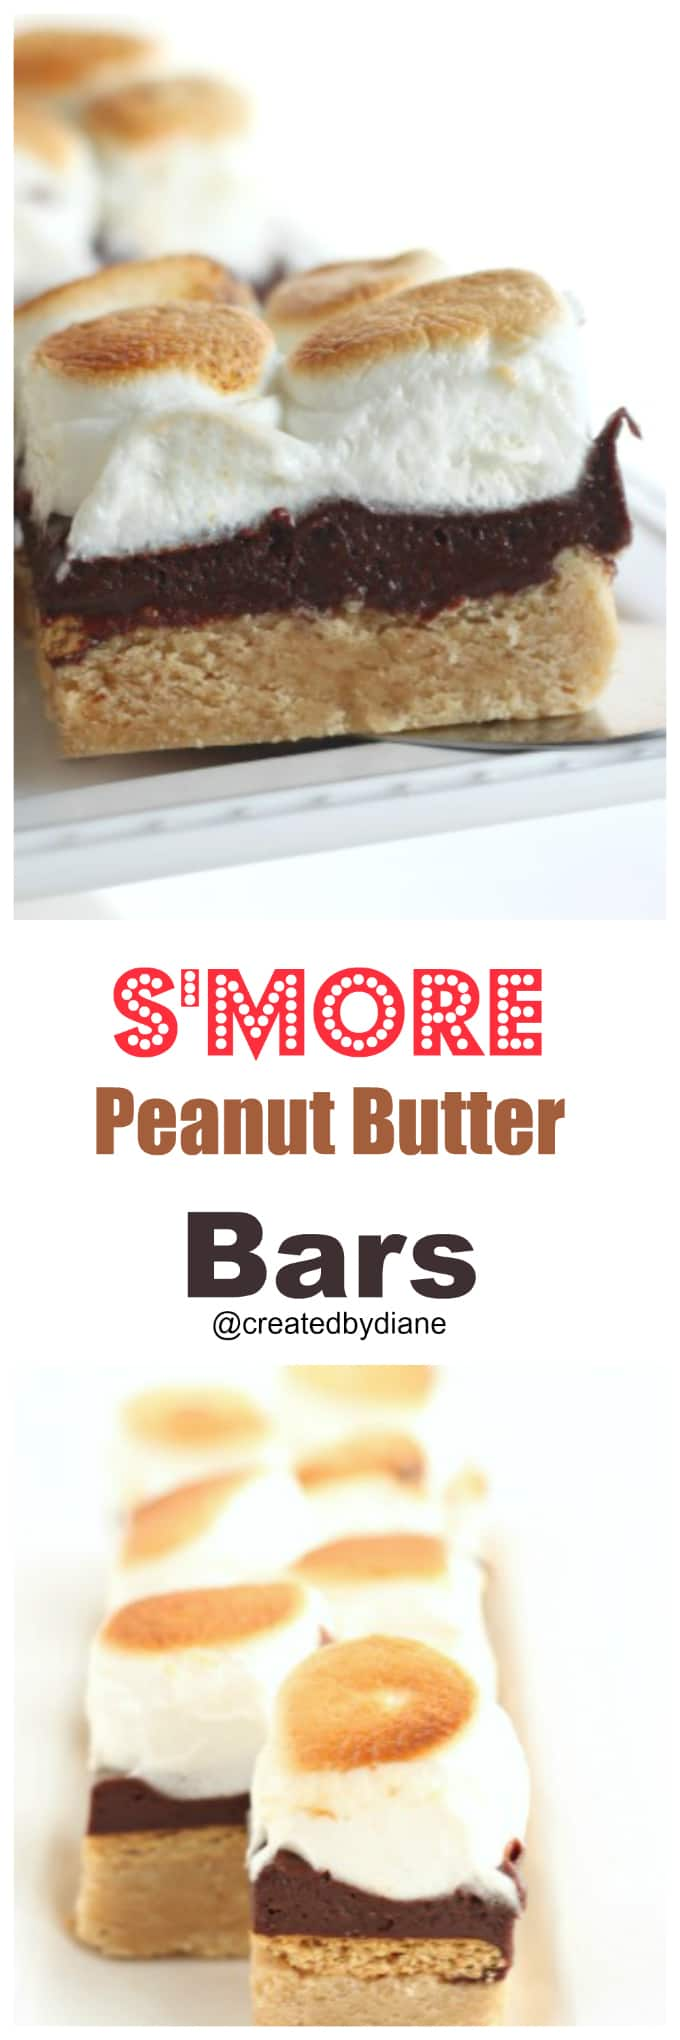 smore-peanut-butter-bars-createdbydiane